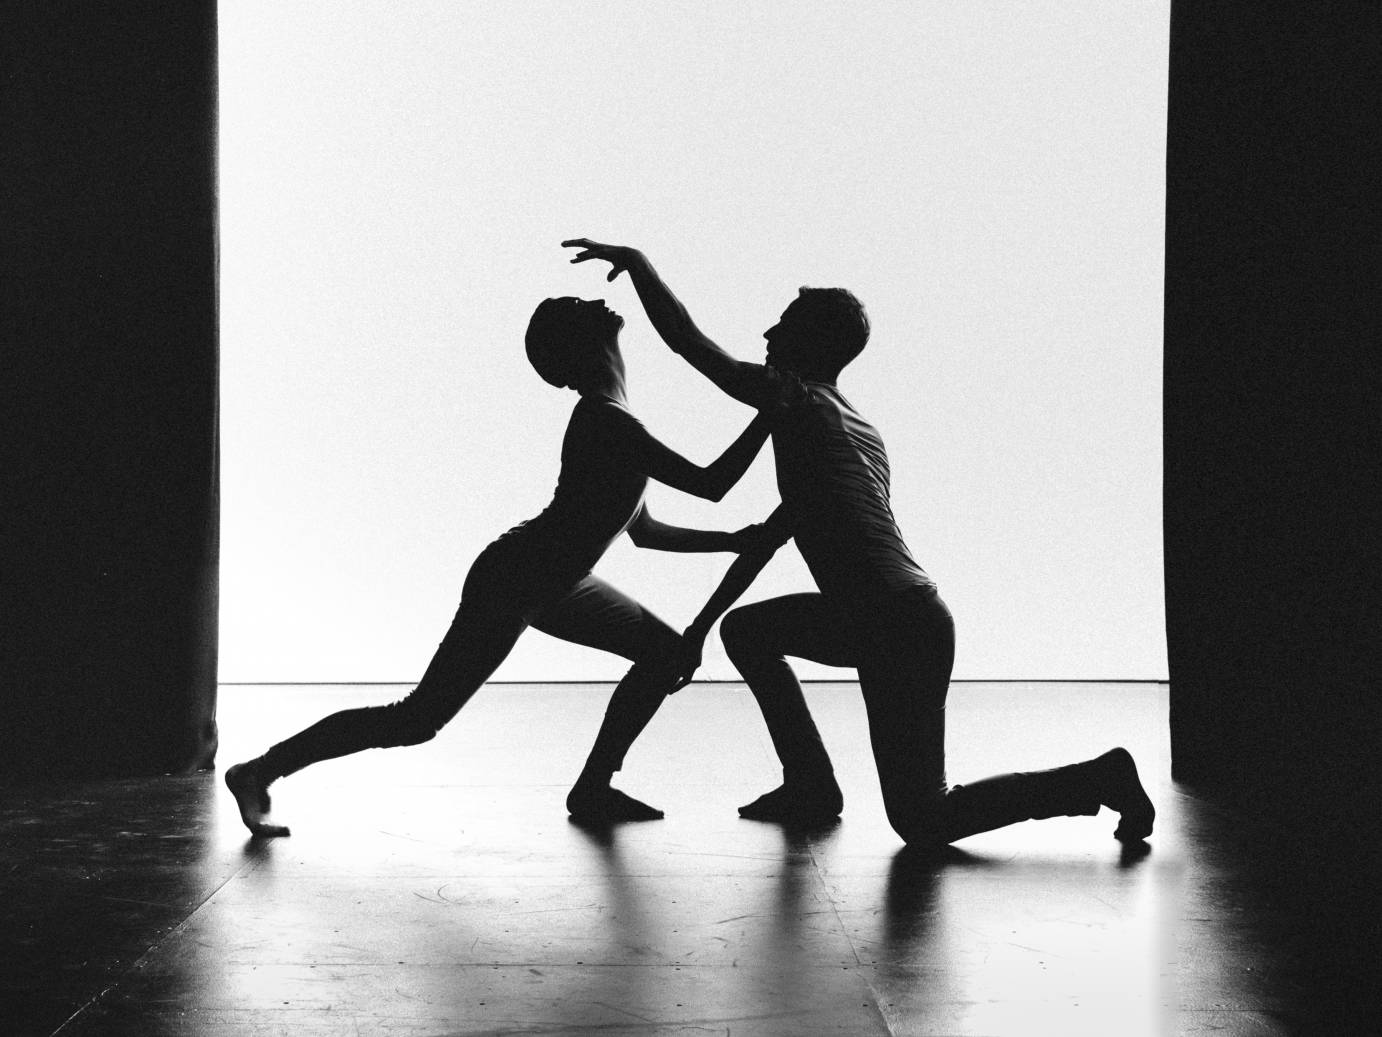 In profile, two dancers lunge facing each other as one lifts a hand above and the other lifts her lips